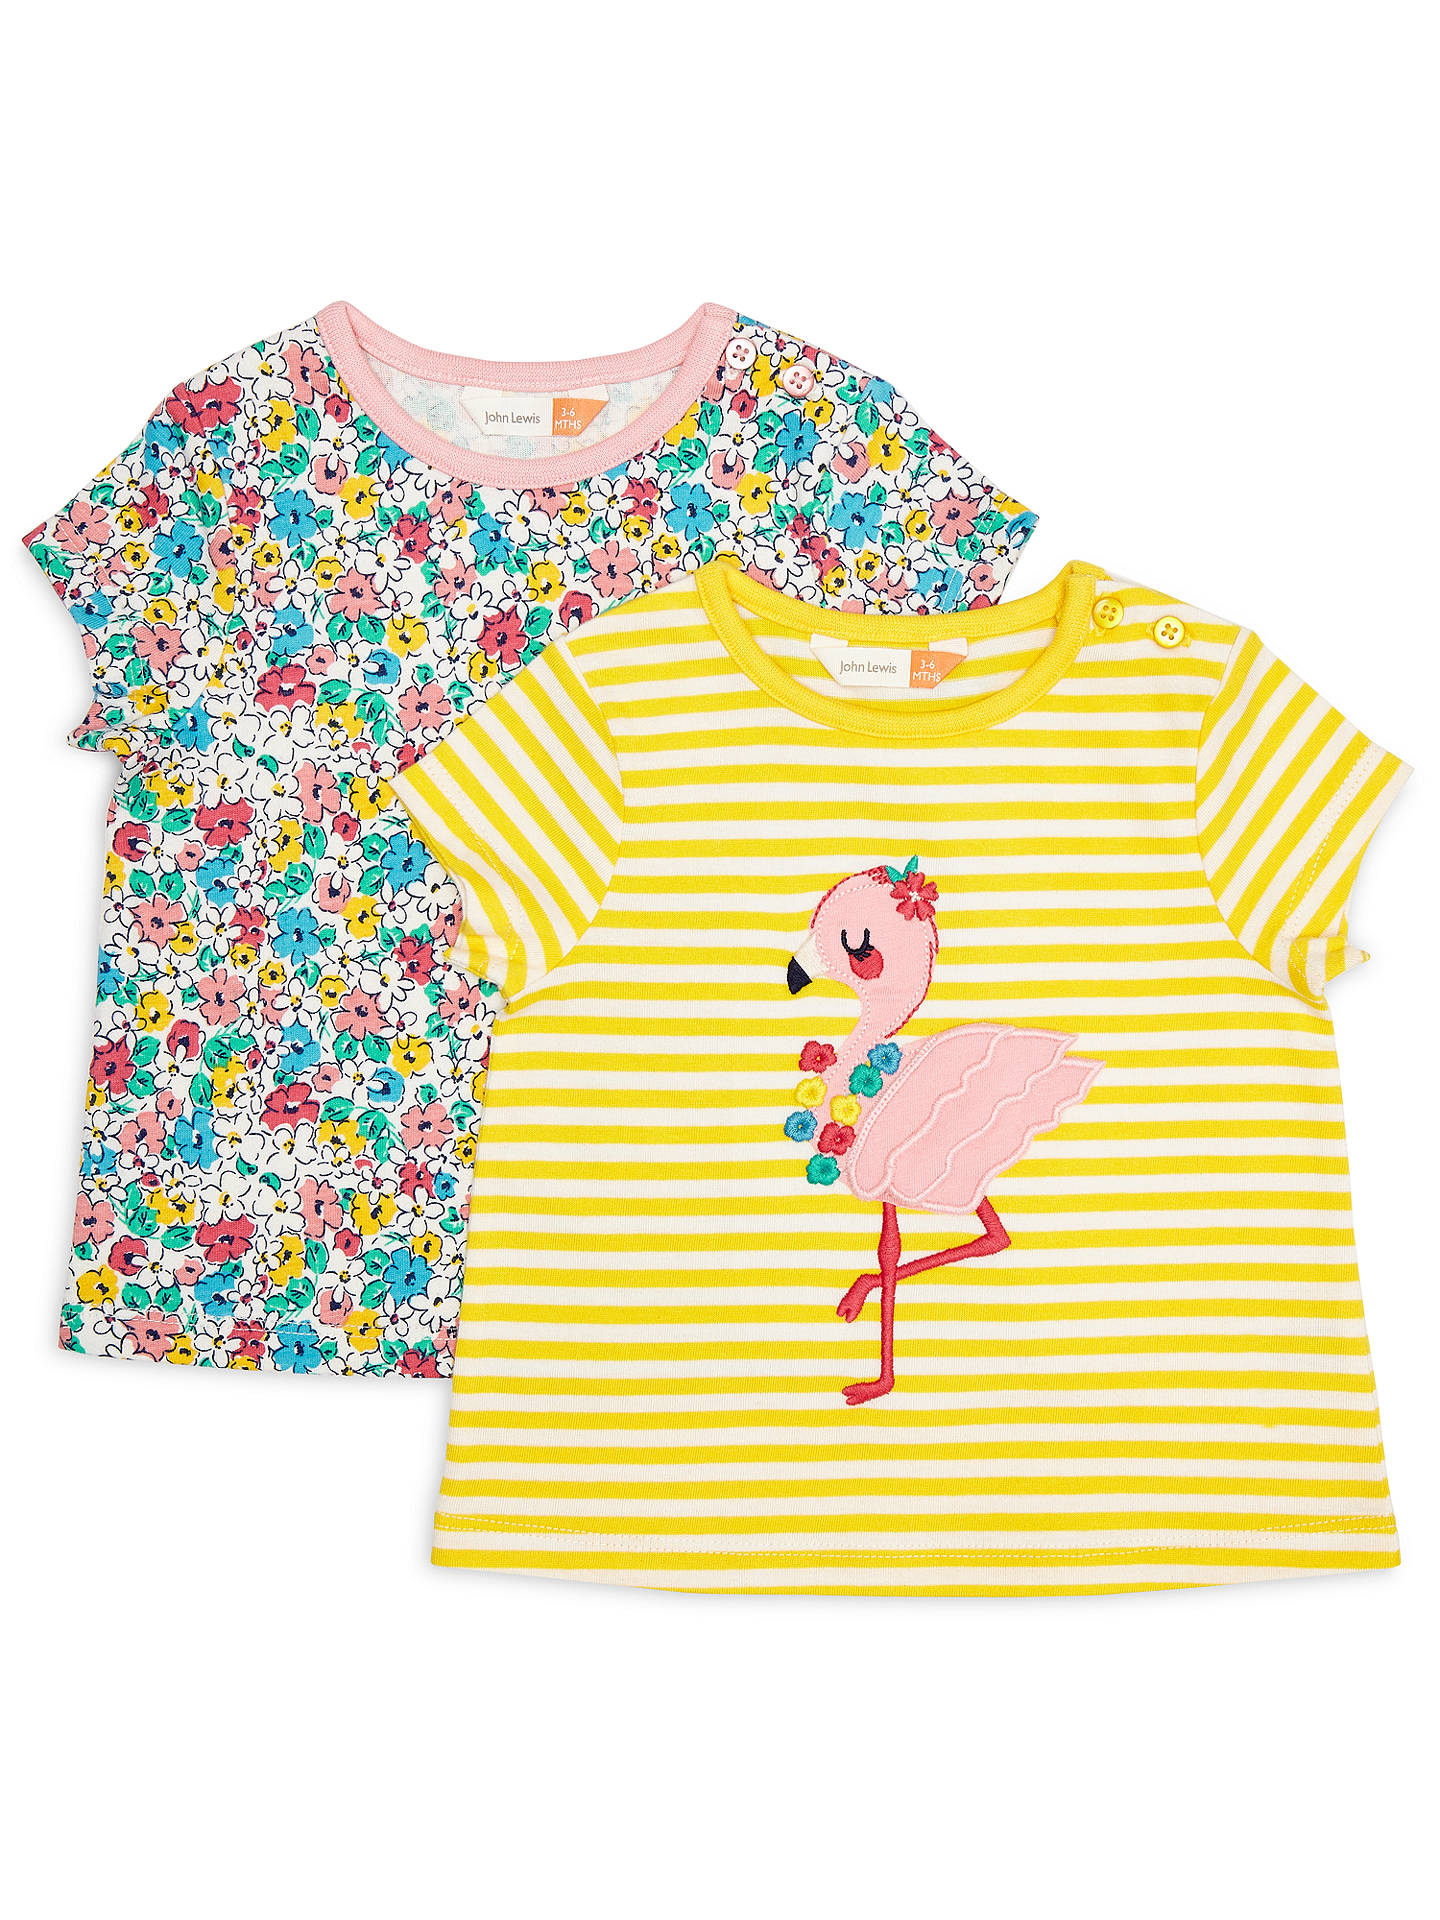 Baby Girls Clothes NEXT Applique Flamingo 2 Pack T-Shirts Tee 3-6 /& 6-9 Months